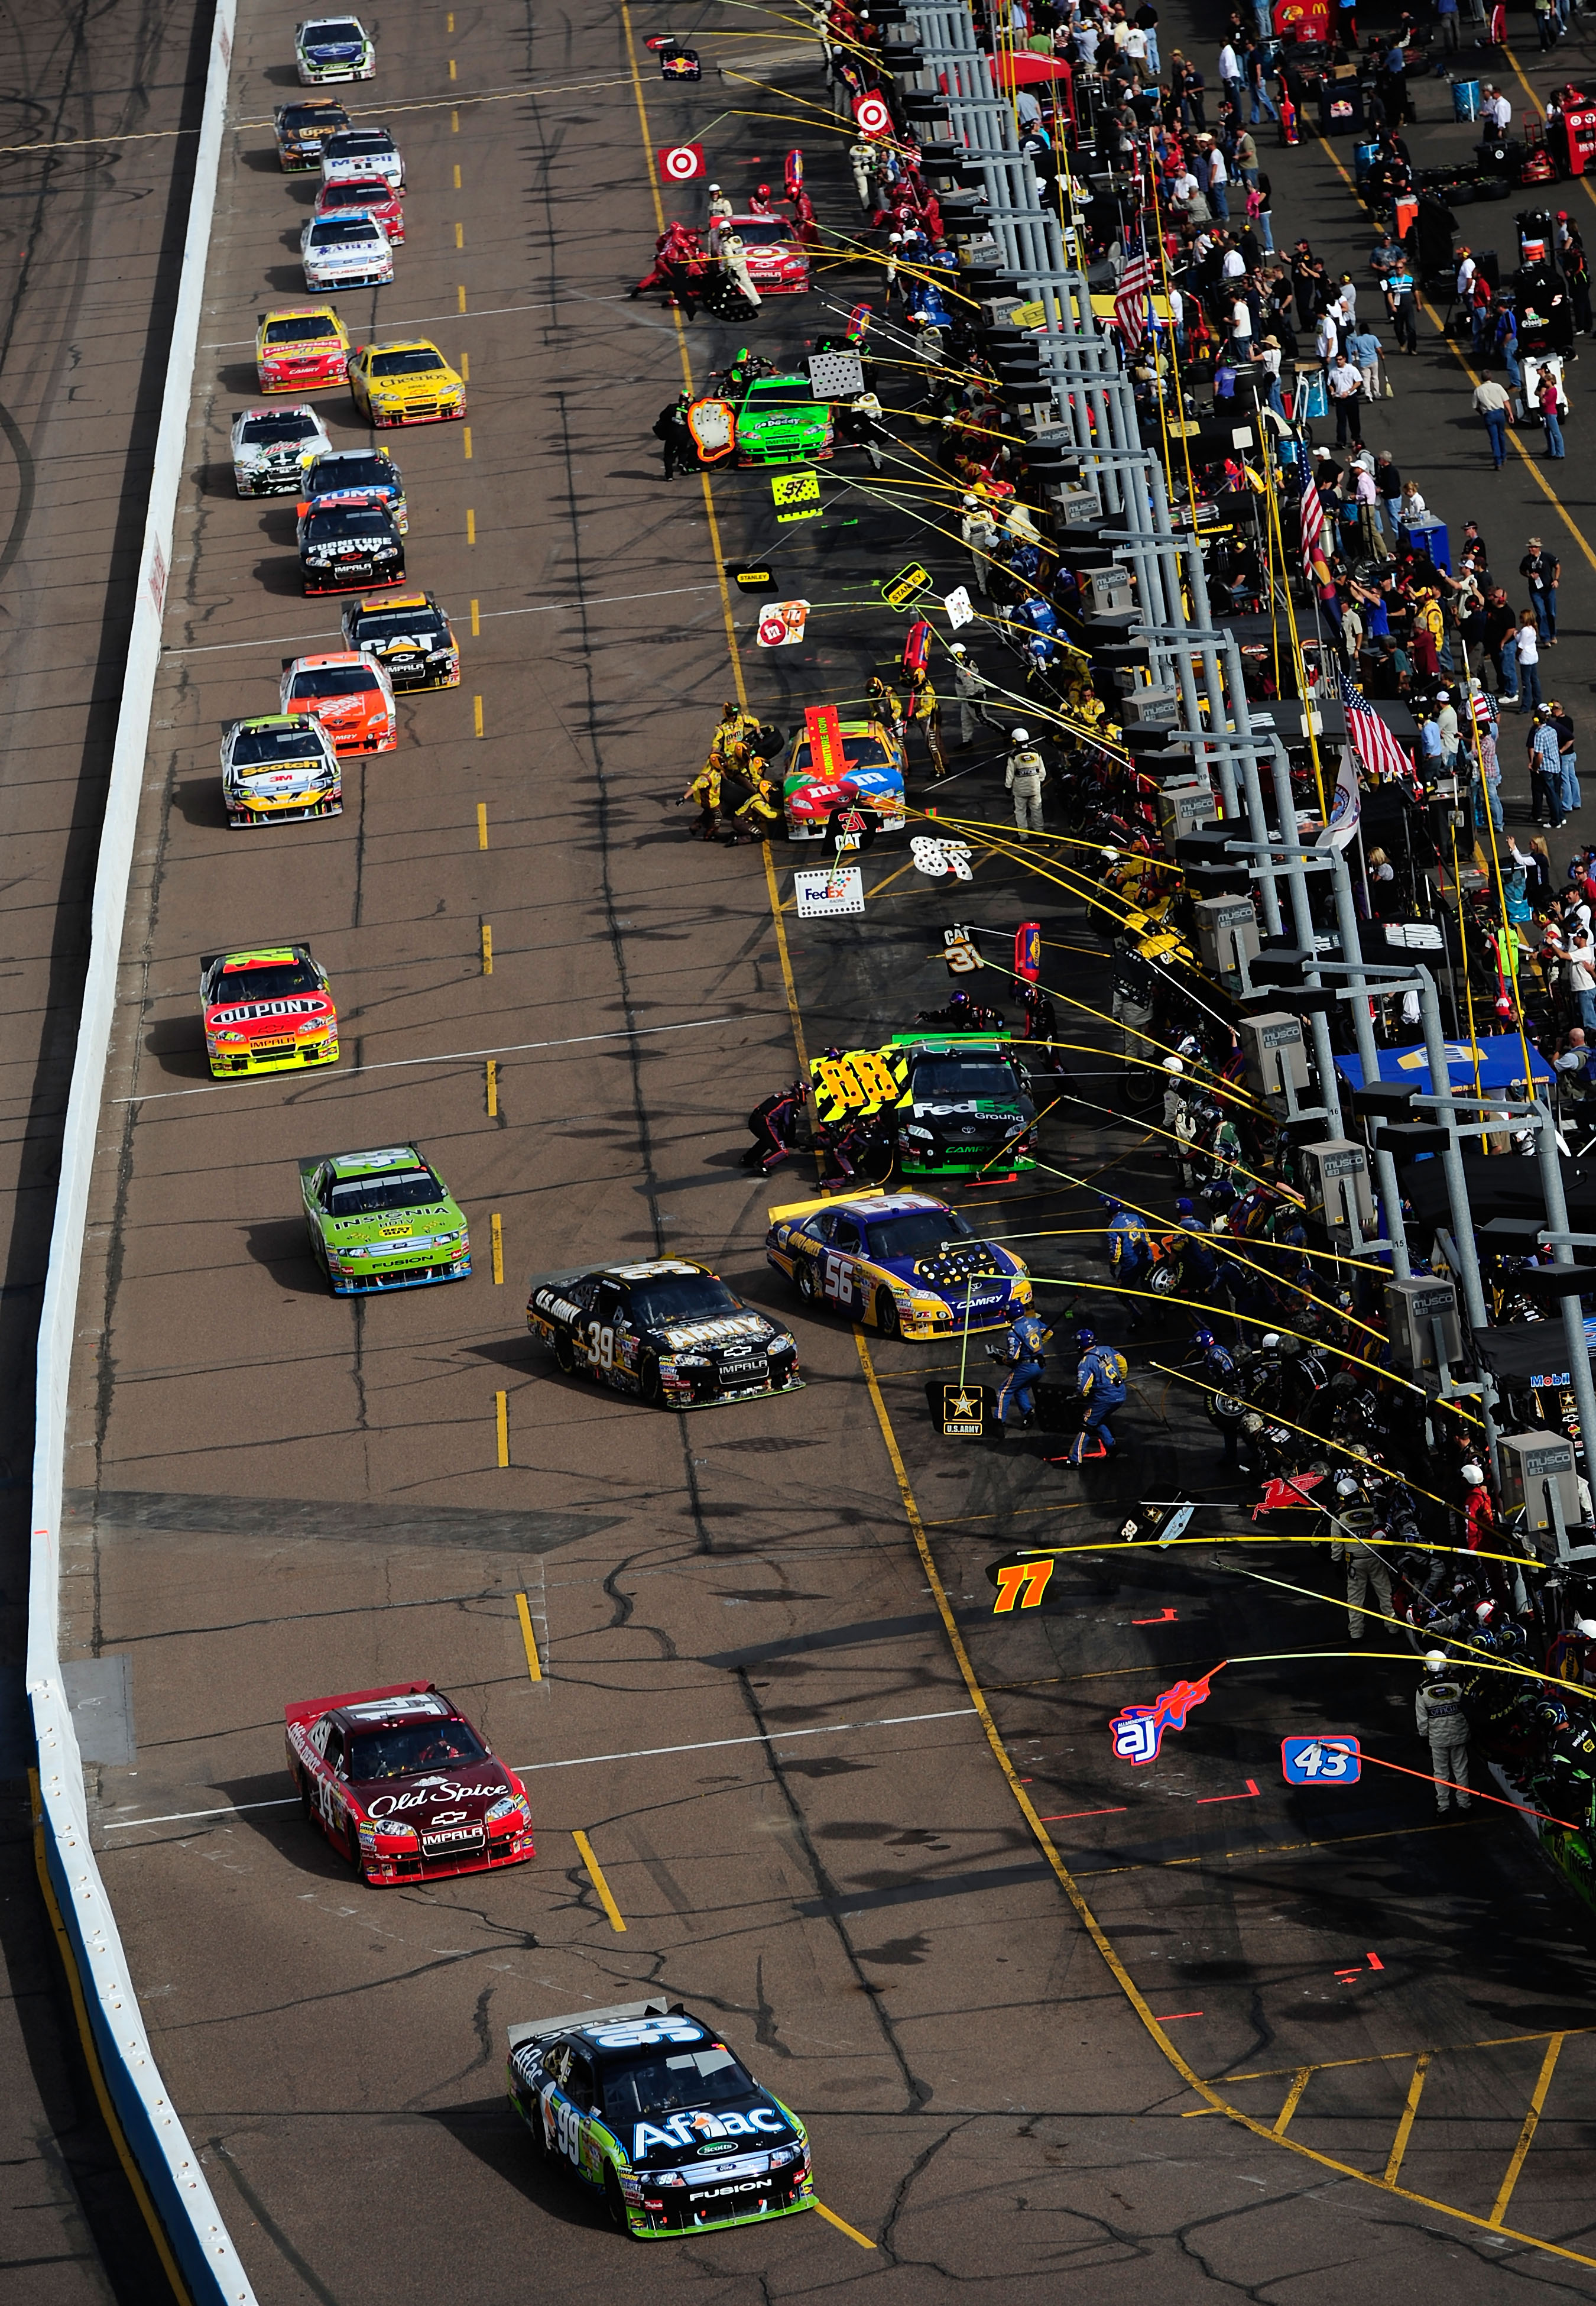 AVONDALE, AZ - NOVEMBER 14:  Carl Edwards, driver of the #99 Aflac Ford, leads cars off of pit road during the NASCAR Sprint Cup Series Kobalt Tools 500 at Phoenix International Raceway on November 14, 2010 in Avondale, Arizona.  (Photo by Robert Laberge/